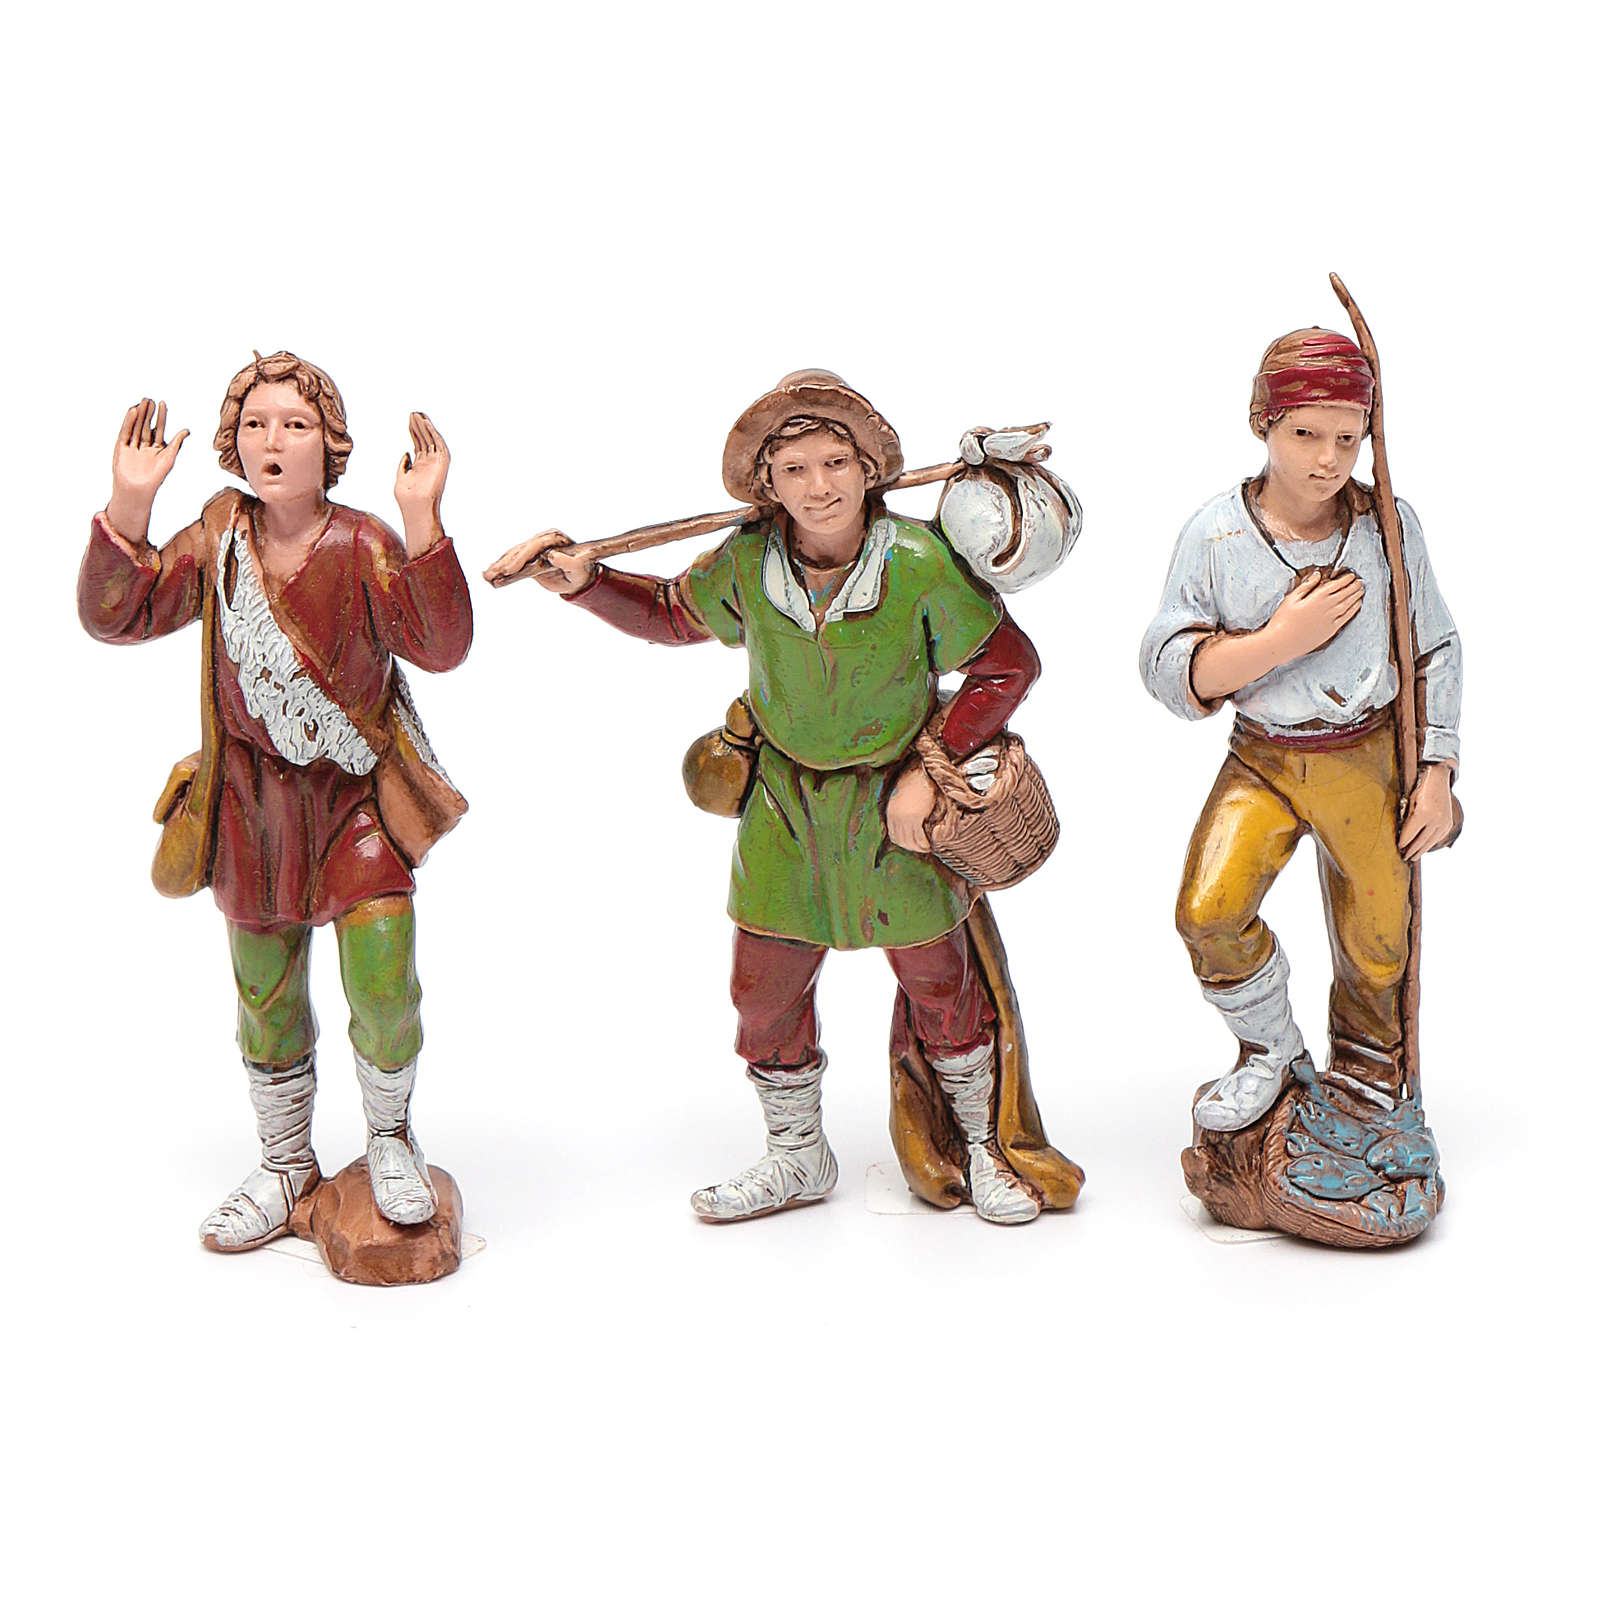 Shepherds figurines 8cm by Moranduzzo, 6pcs 4